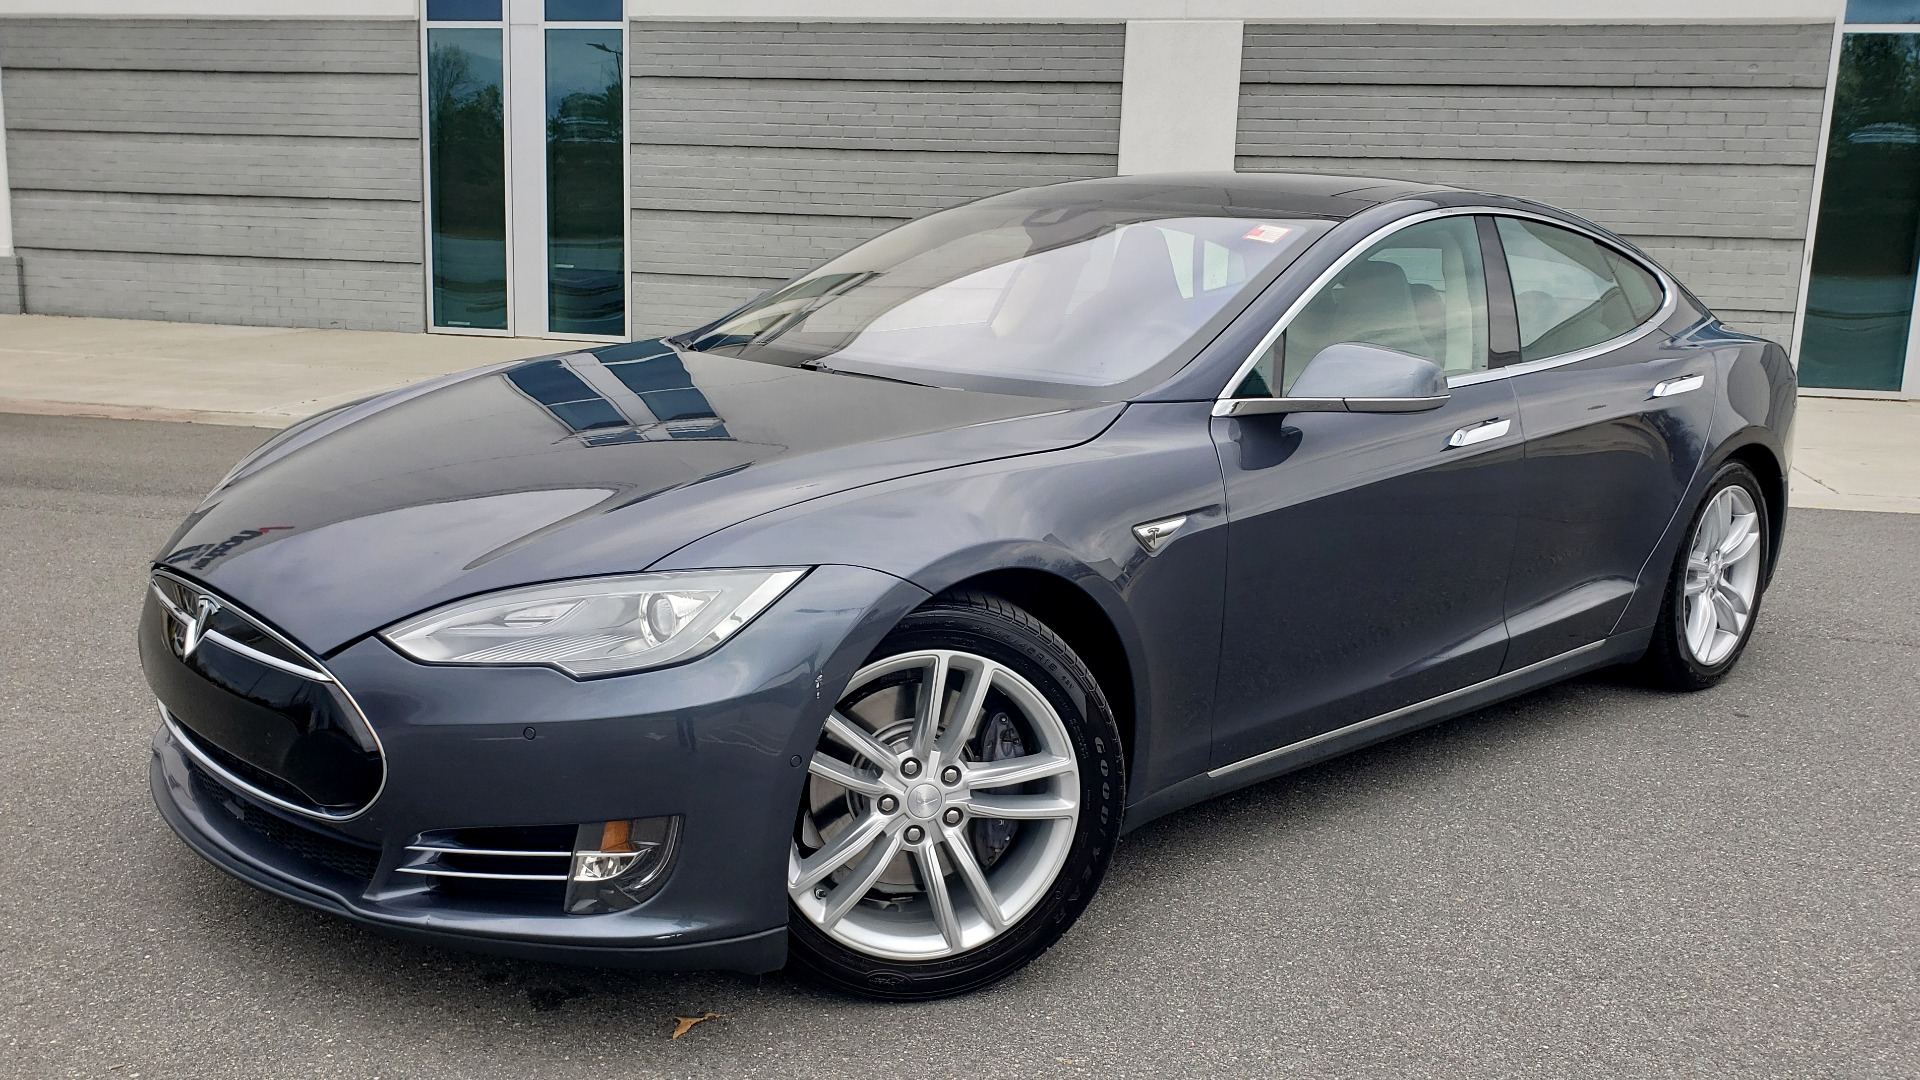 Used 2014 Tesla MODEL S 60 kWh BATTERY / TECH / NAV / SUBZERO / SUNROOF / REARVIEW for sale Sold at Formula Imports in Charlotte NC 28227 1